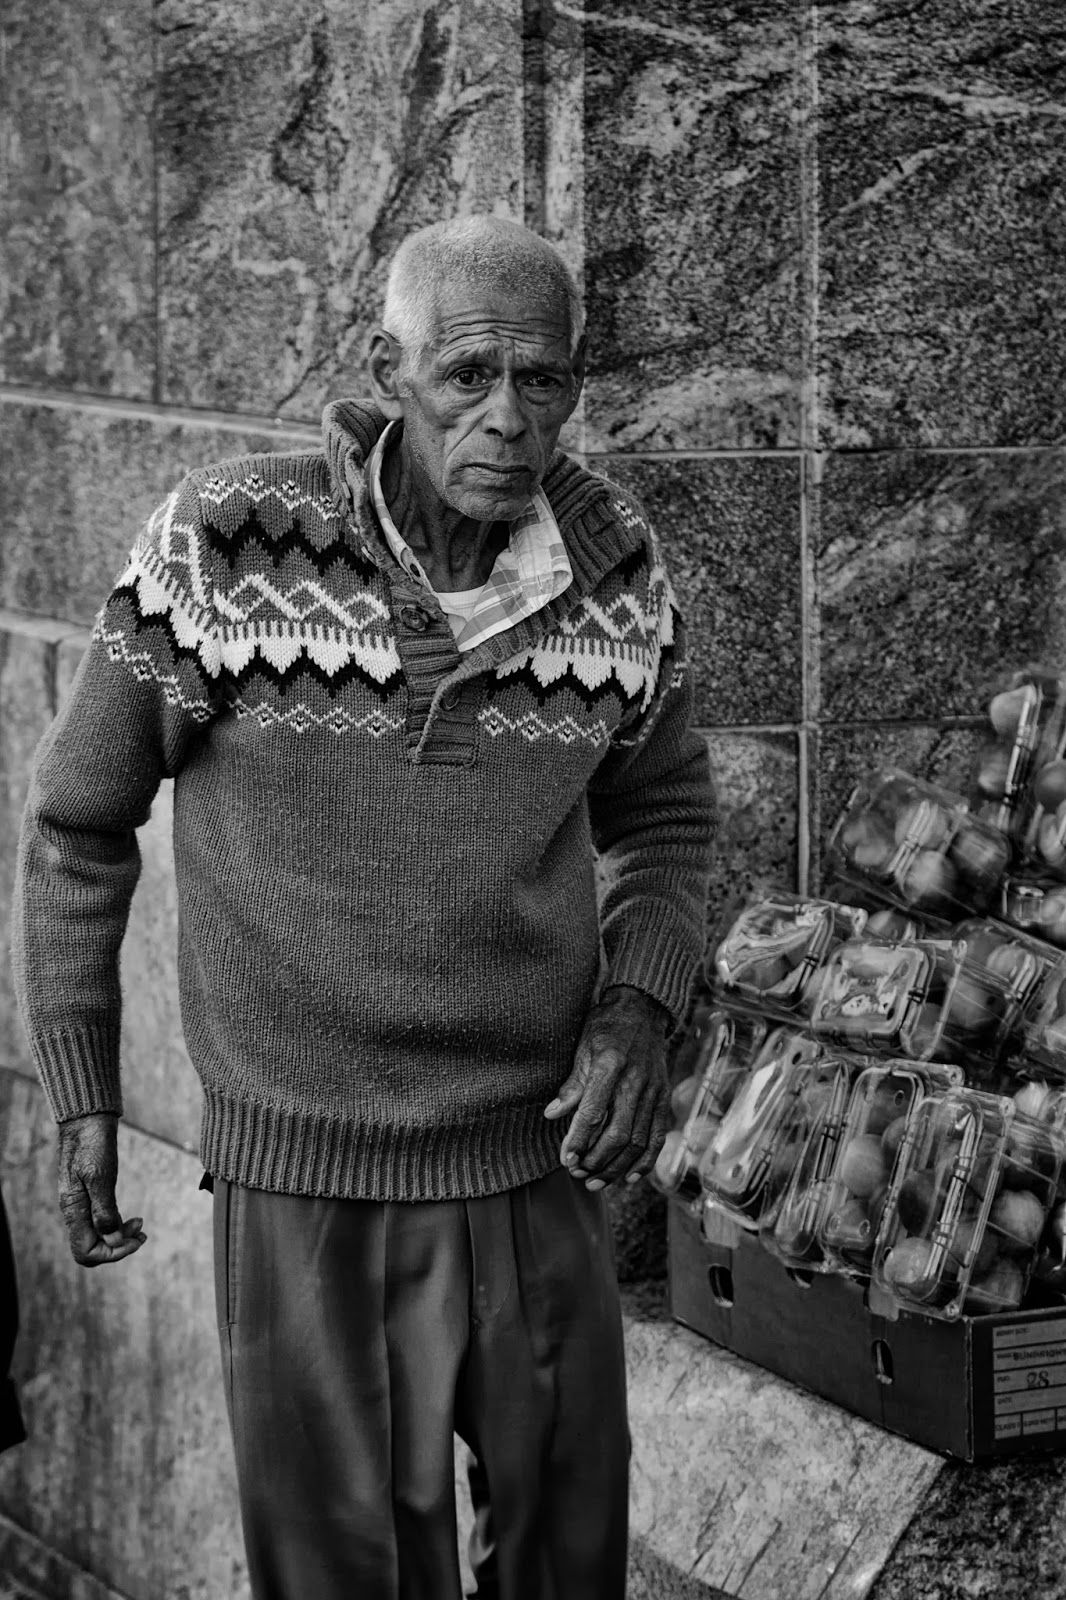 A portrait of a fuit seller in Cape Town